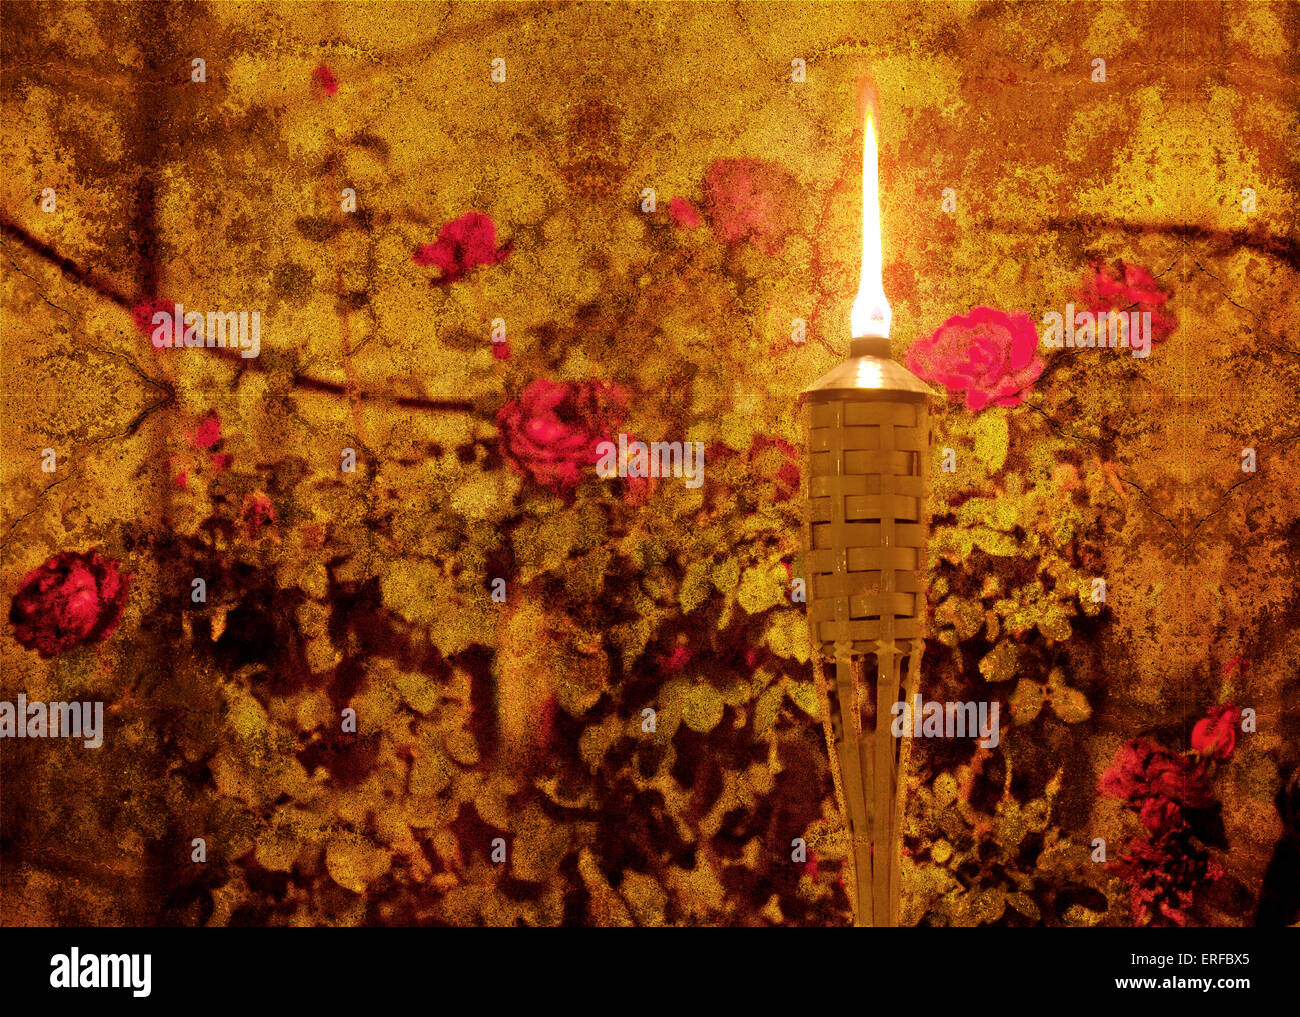 vintage style textured picture of glowing torch in a flower garden stock photo vintage style textured picture of glowing torch in a flower garden texture added grunge effect picture retro style effect add